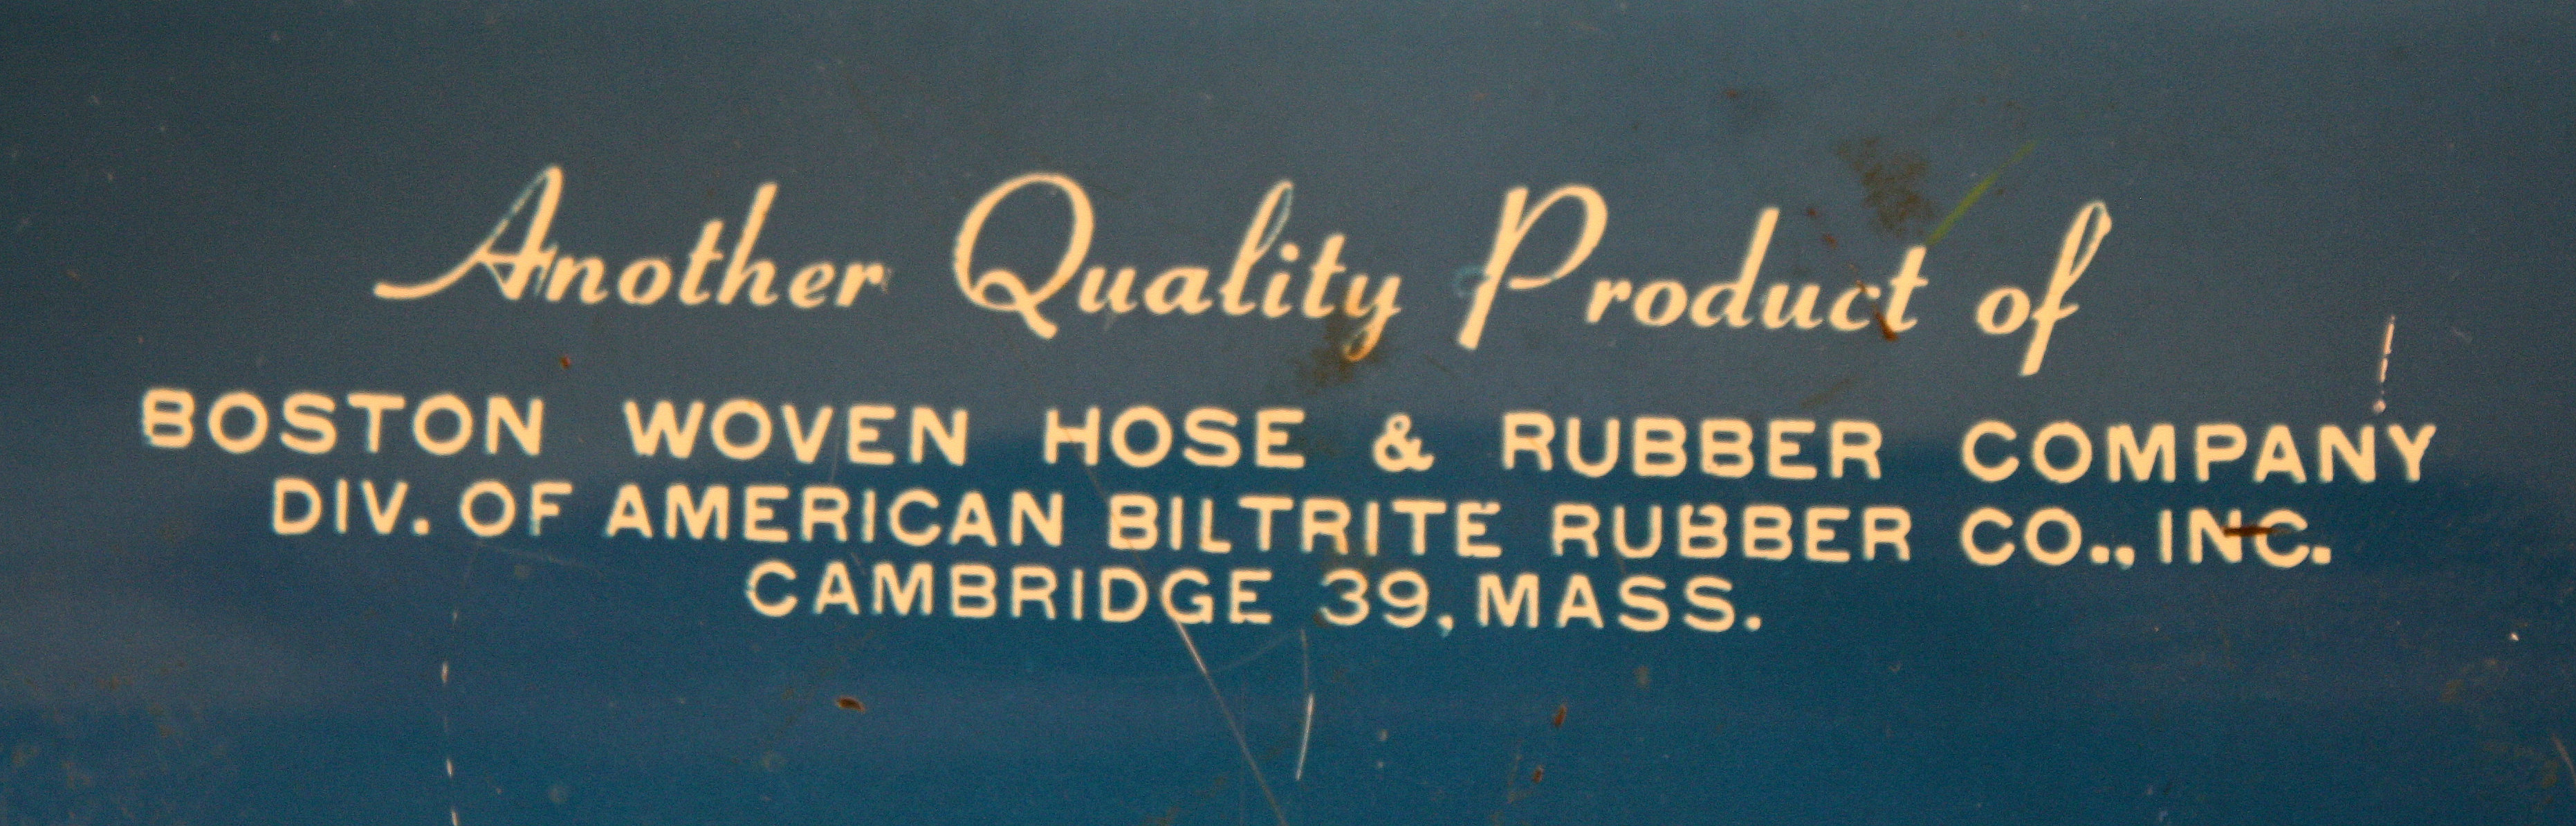 The company produced a cotton-jacketed rubber hose and it soon became the industry standard for manufacturing fire hoses. The Boston Bulldog was created as ... & BULL DOG FRICTION TAPE CONTAINER / ADVERTISING TIN | The Cambridge Room